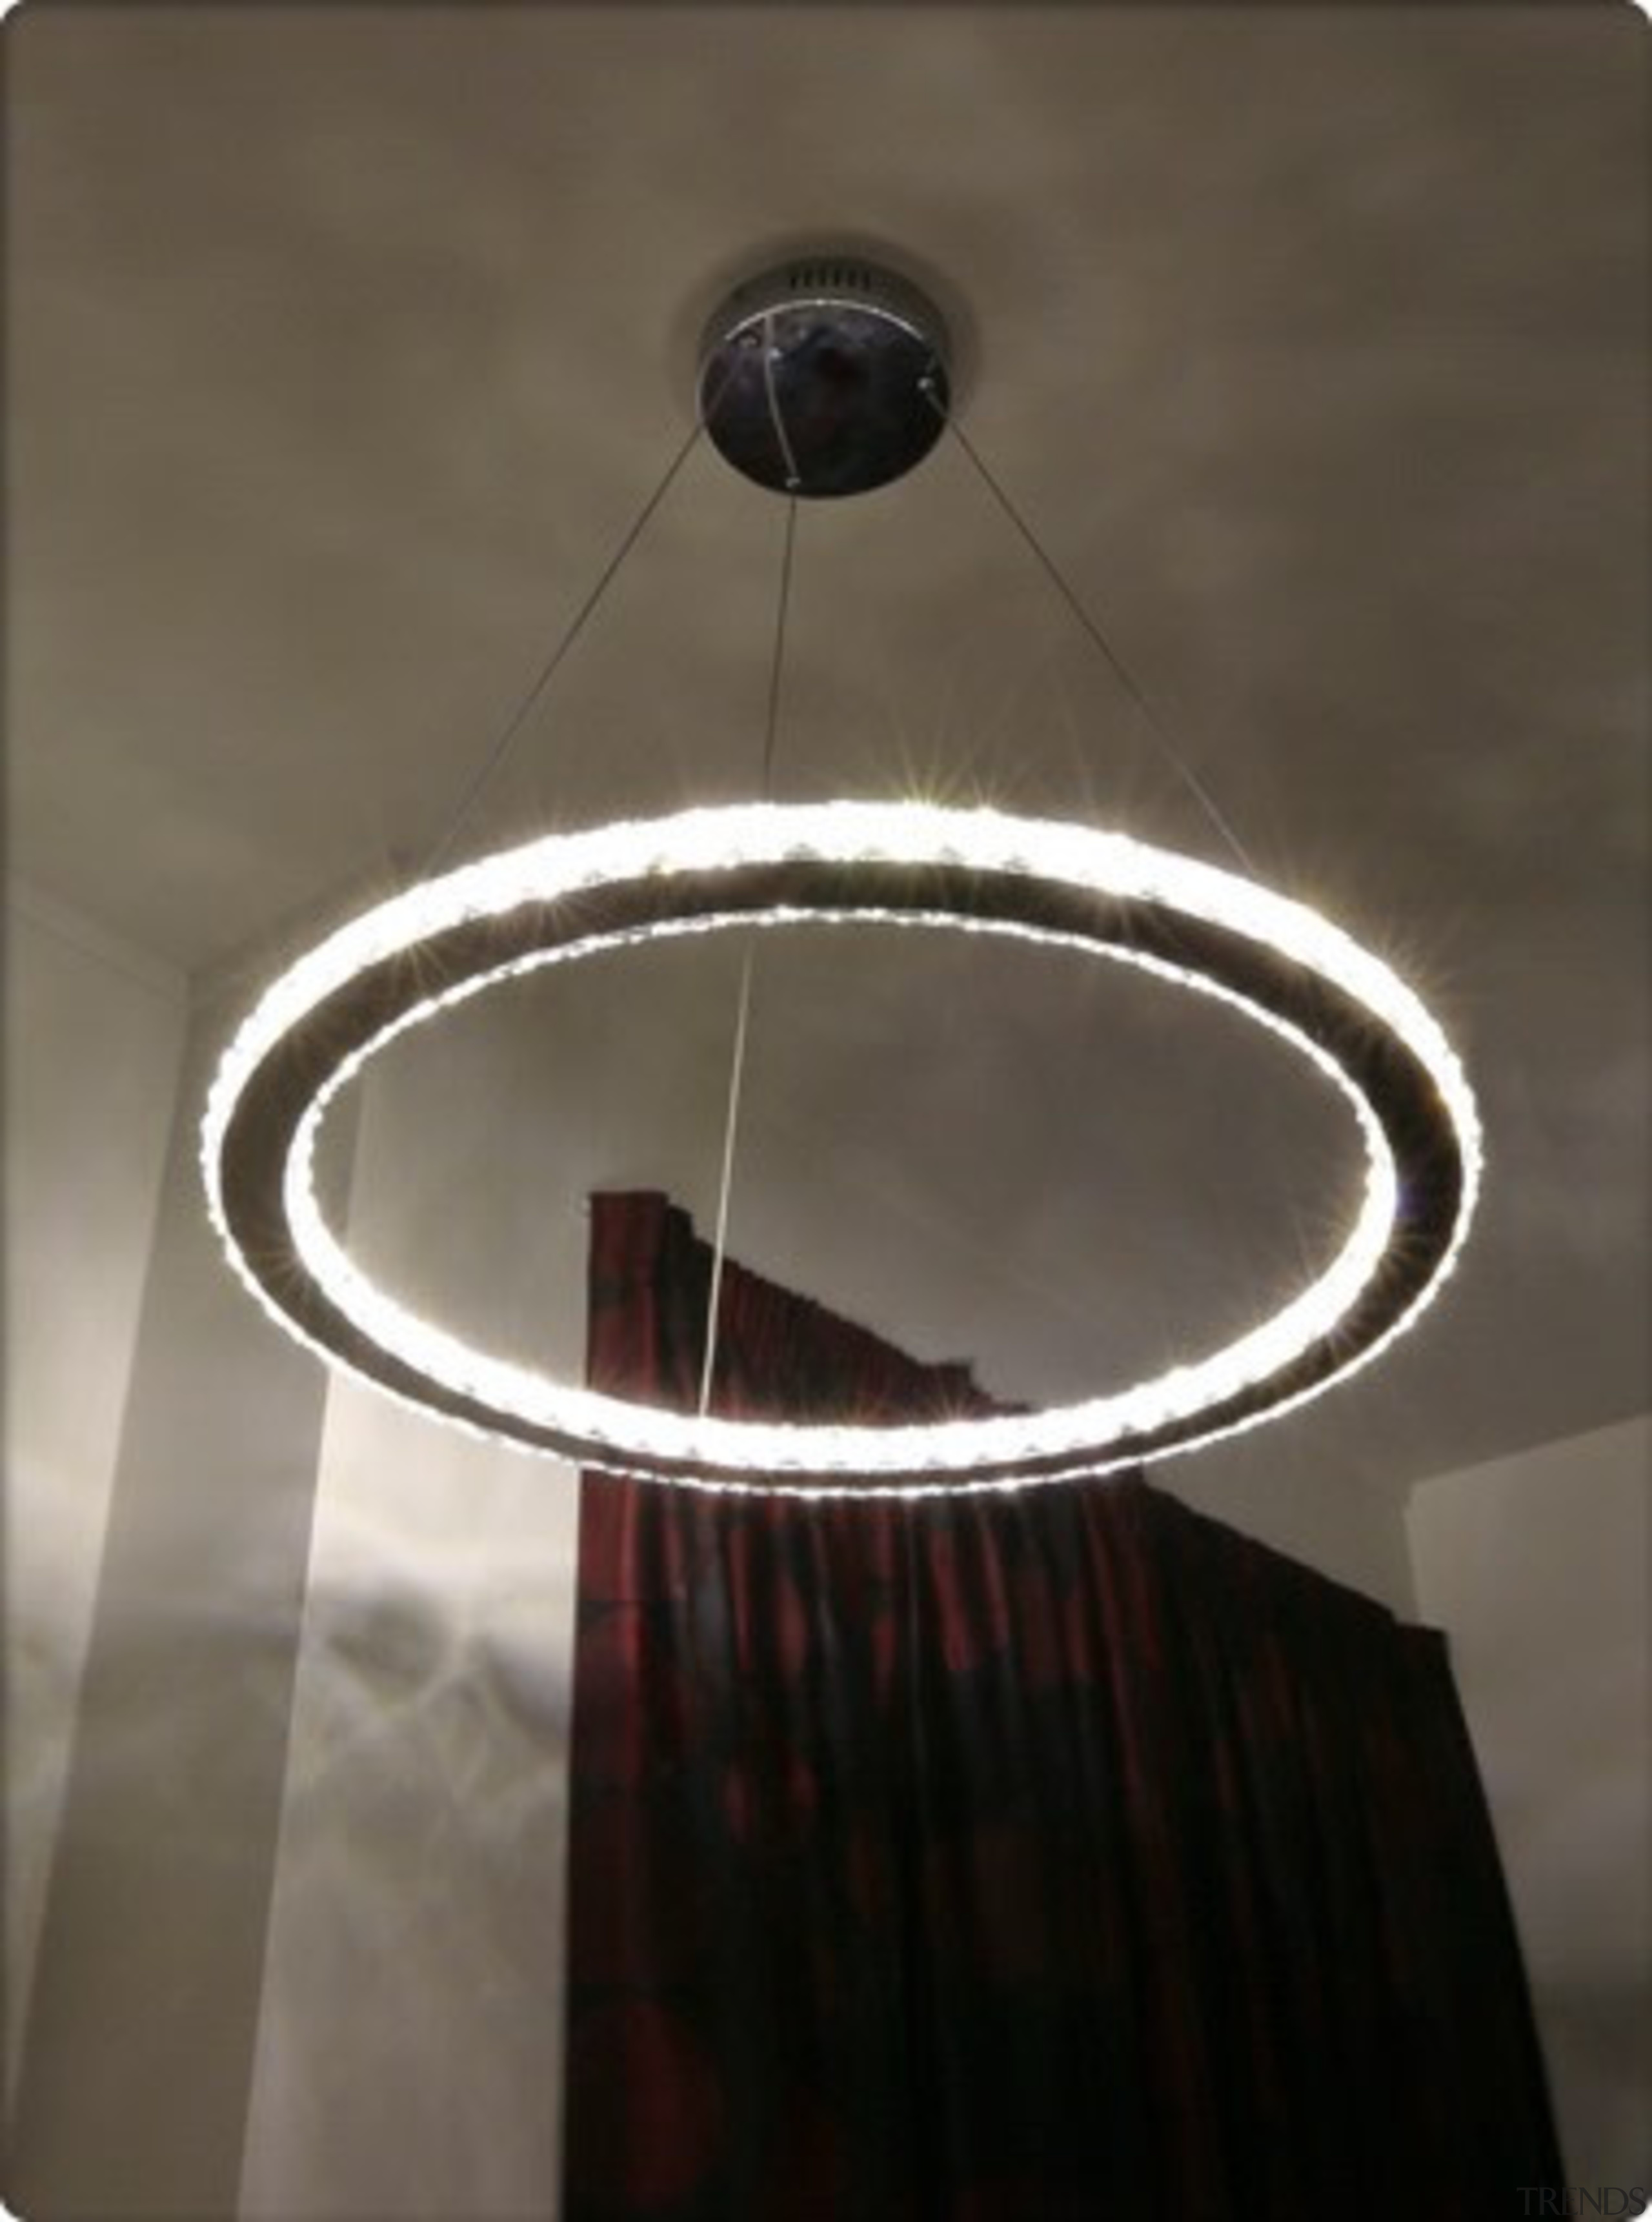 FeaturesThe Rad LED pendant is the very definition ceiling, ceiling fixture, chandelier, circle, lamp, light, light fixture, lighting, lighting accessory, product design, gray, black